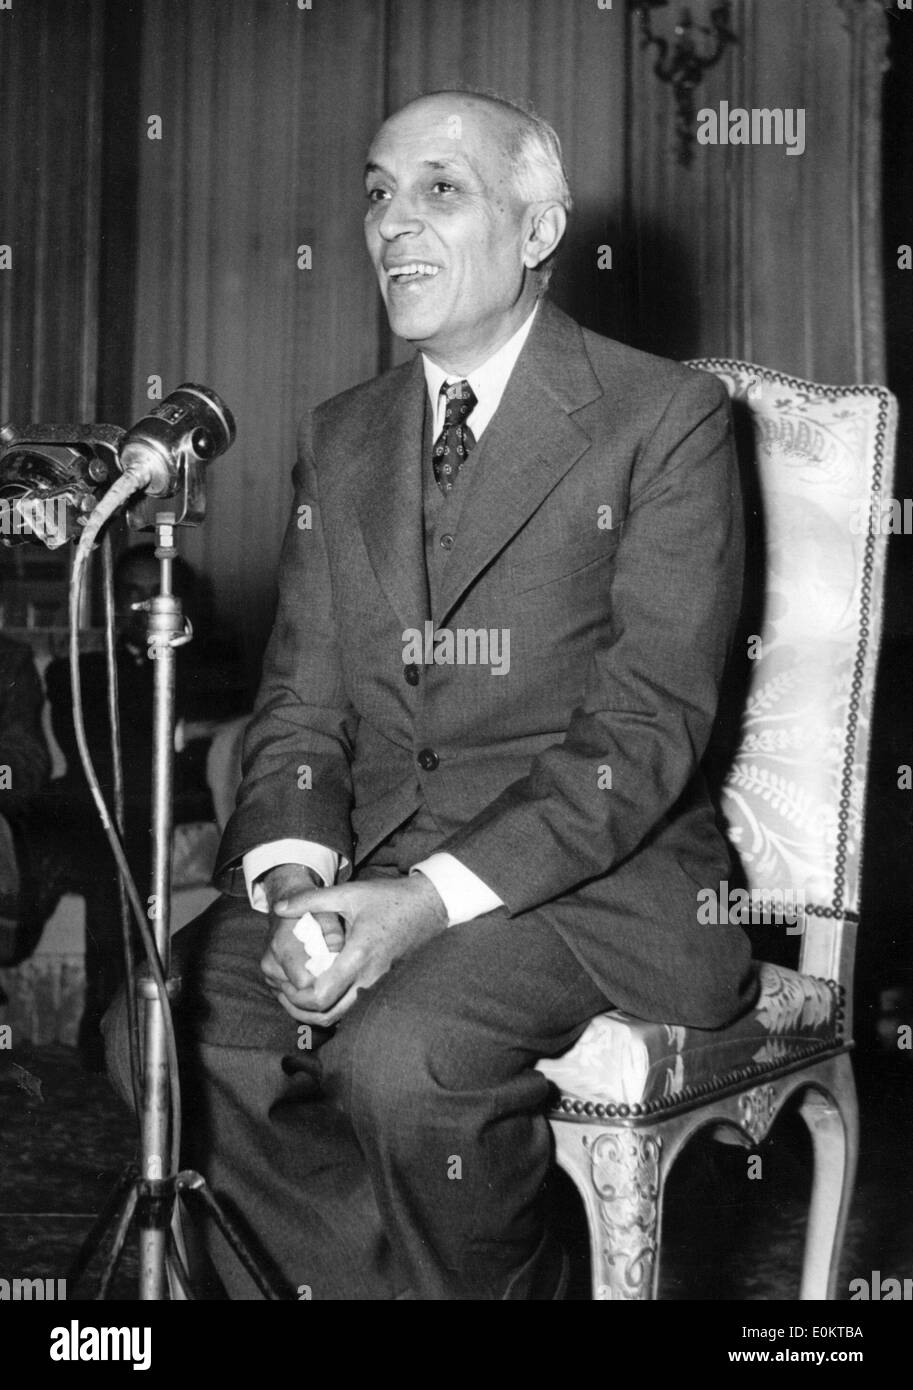 Jawaharlal Nehru speaking at a press conference - Stock Image